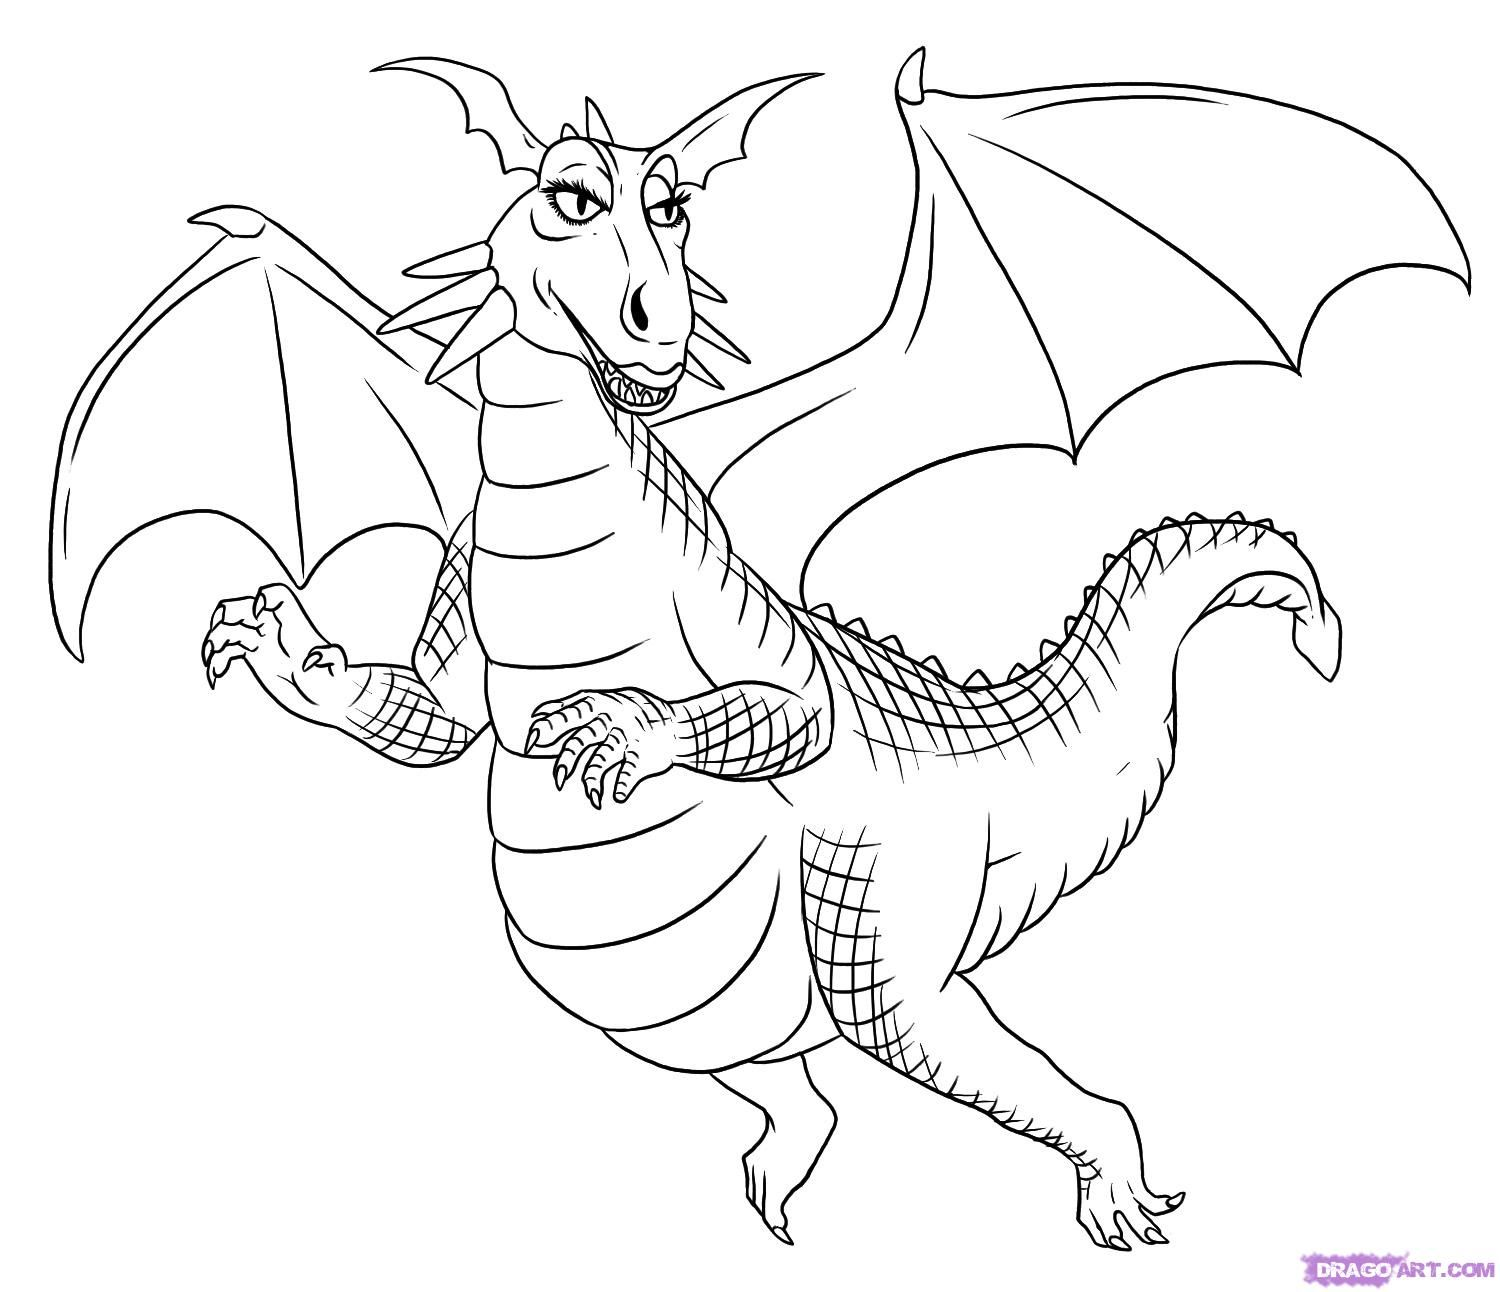 http://imgs.steps.dragoart.com/how-to-draw-dragon-from-shrek-step ...